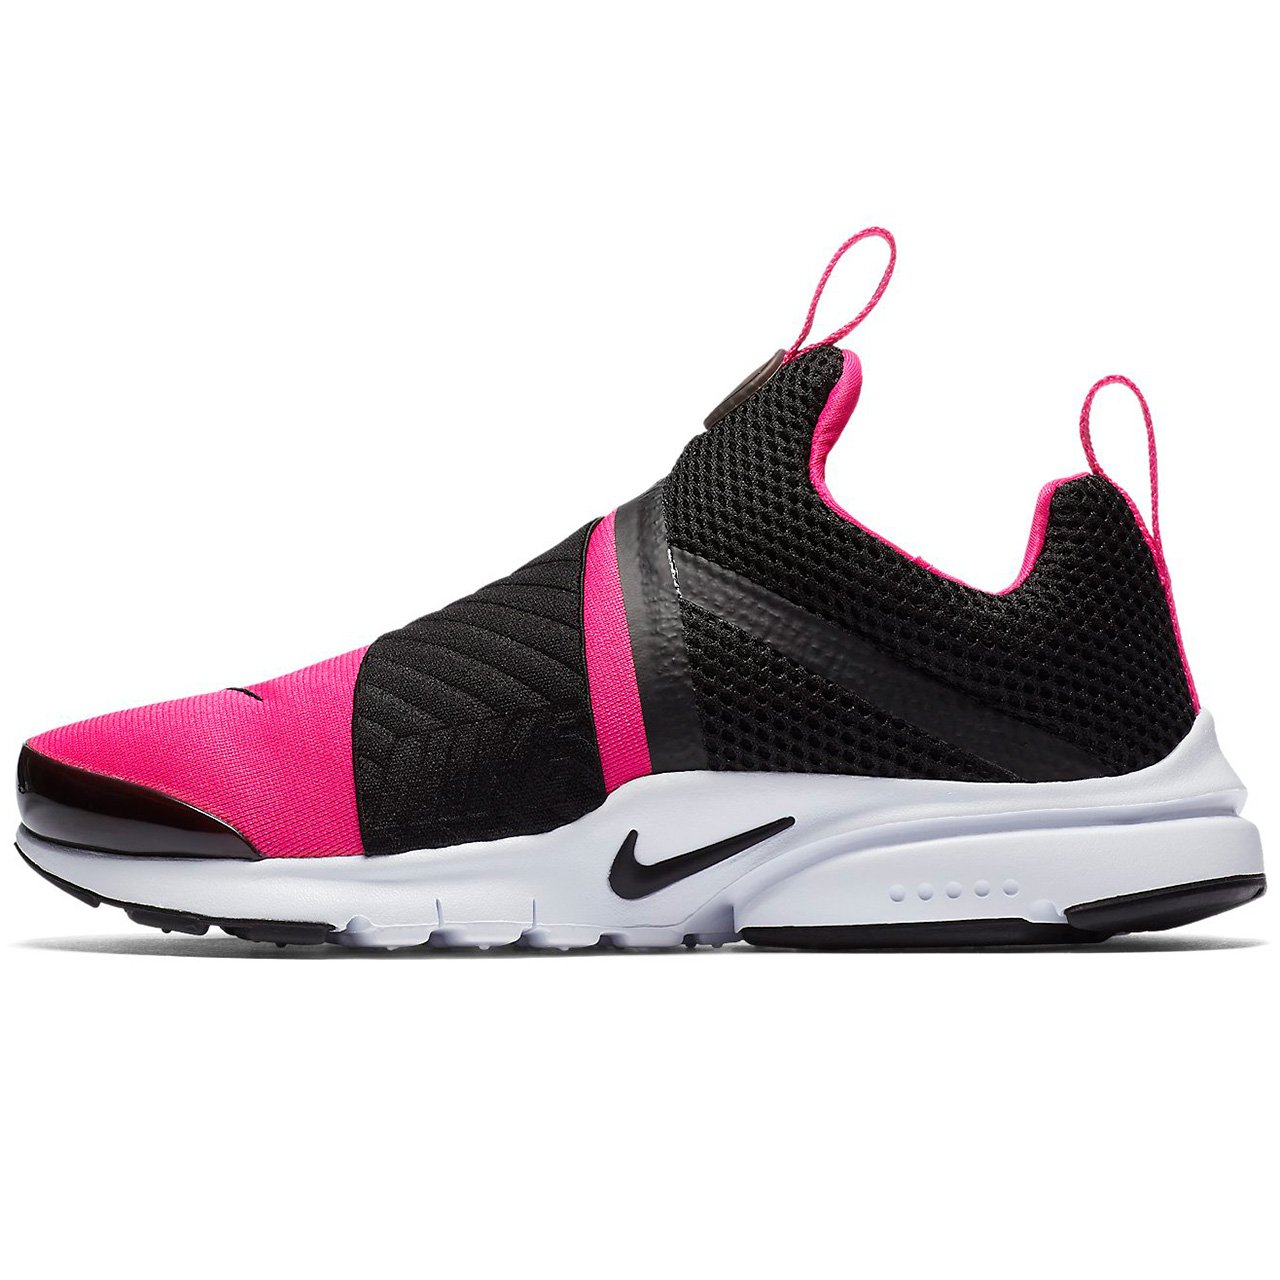 e1e0acd6f63 Galleon - Nike Presto Extreme (GS) Big Kid s Running Shoes Black Pink Prime  White 870022-004 (7 M US)